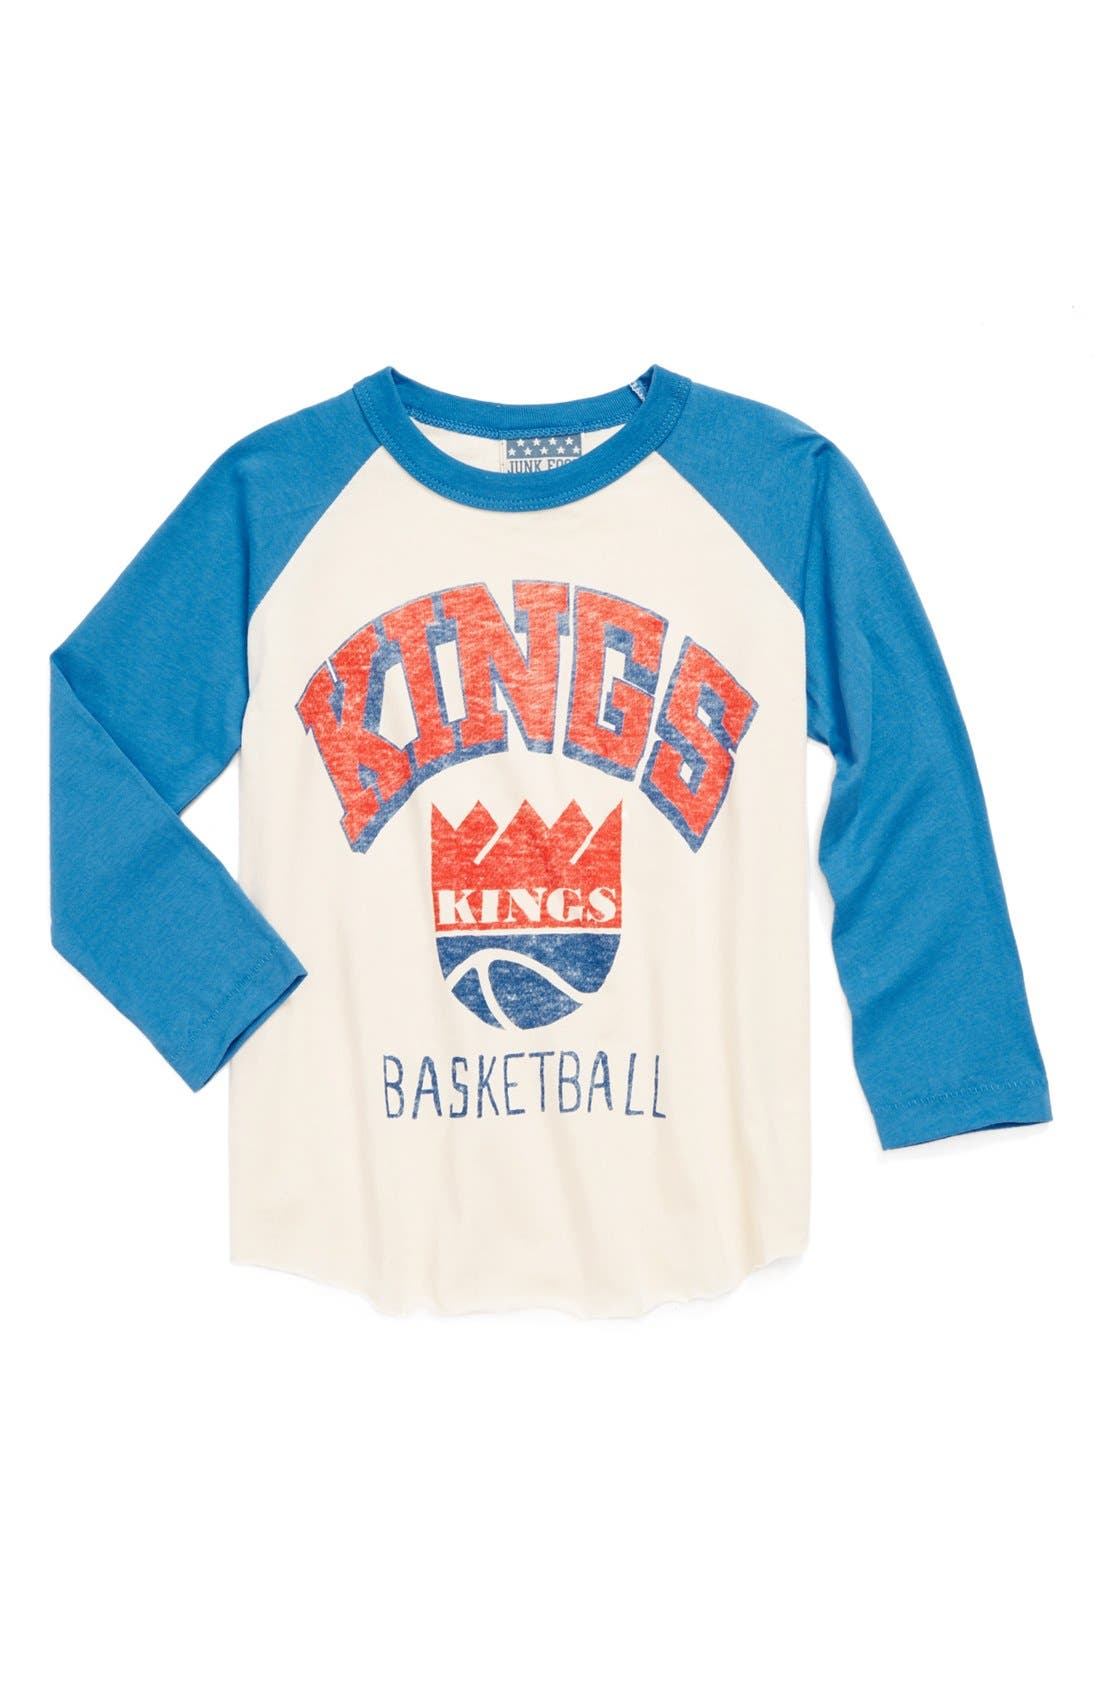 Alternate Image 1 Selected - Junk Food 'Sacramento Kings' Long Sleeve T-Shirt (Toddler Boys)